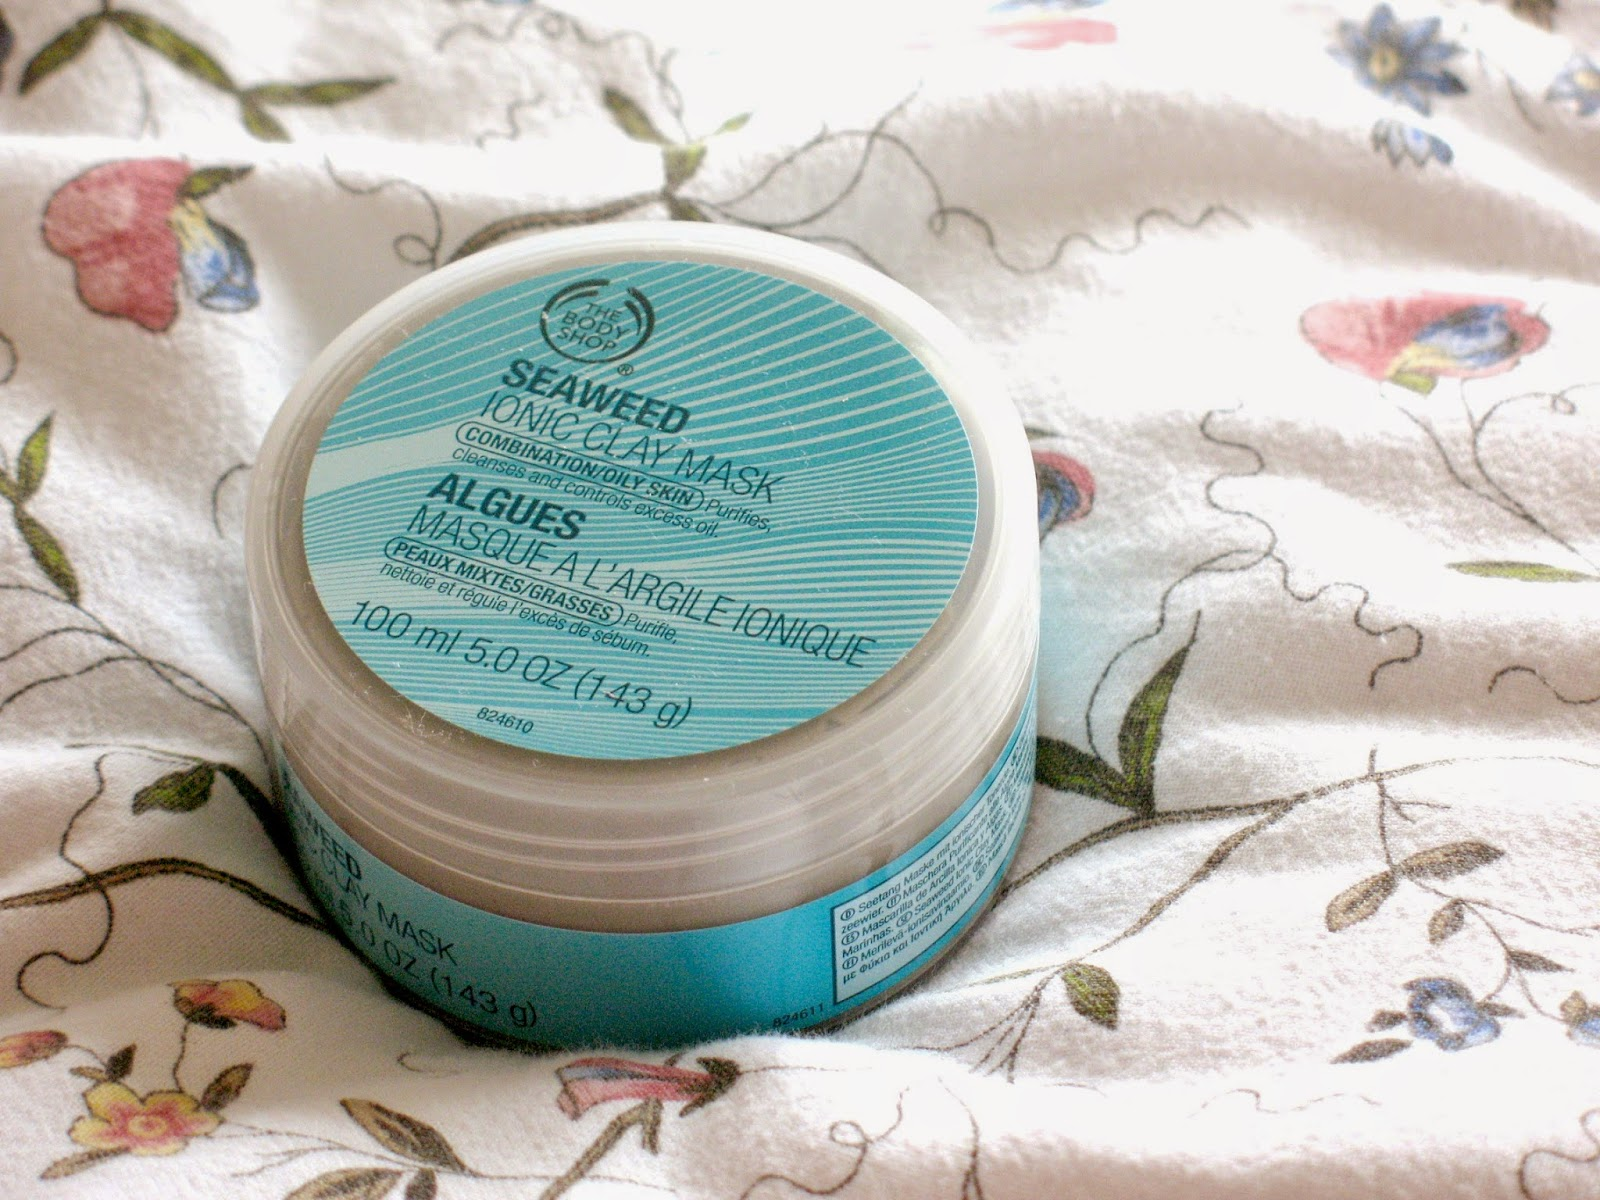 The Body Shop Seaweed Ionic Clay Face Mask